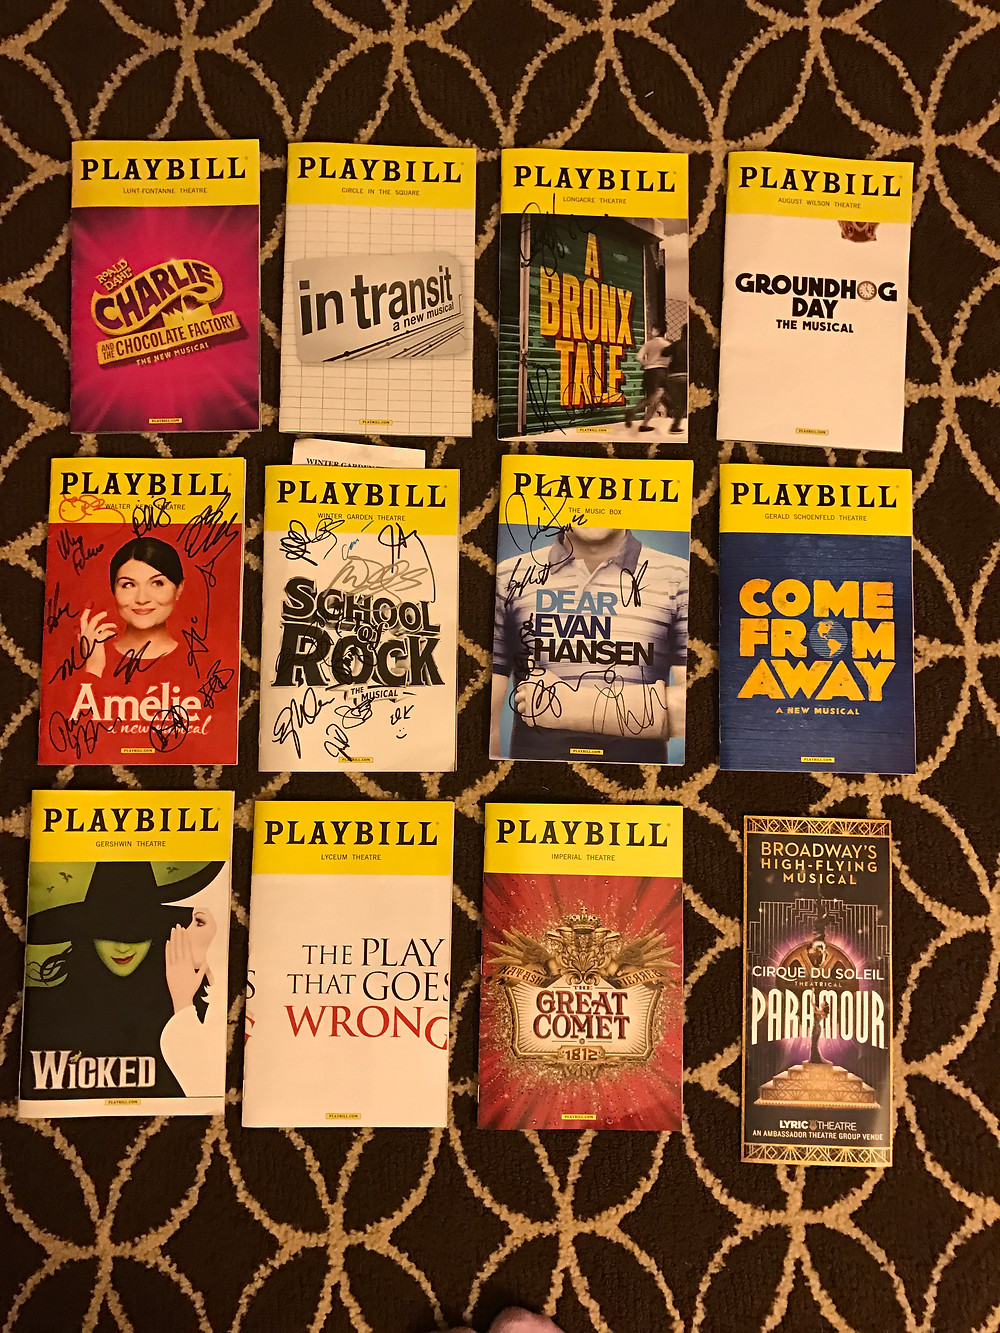 This was one, good trip to Broadway!